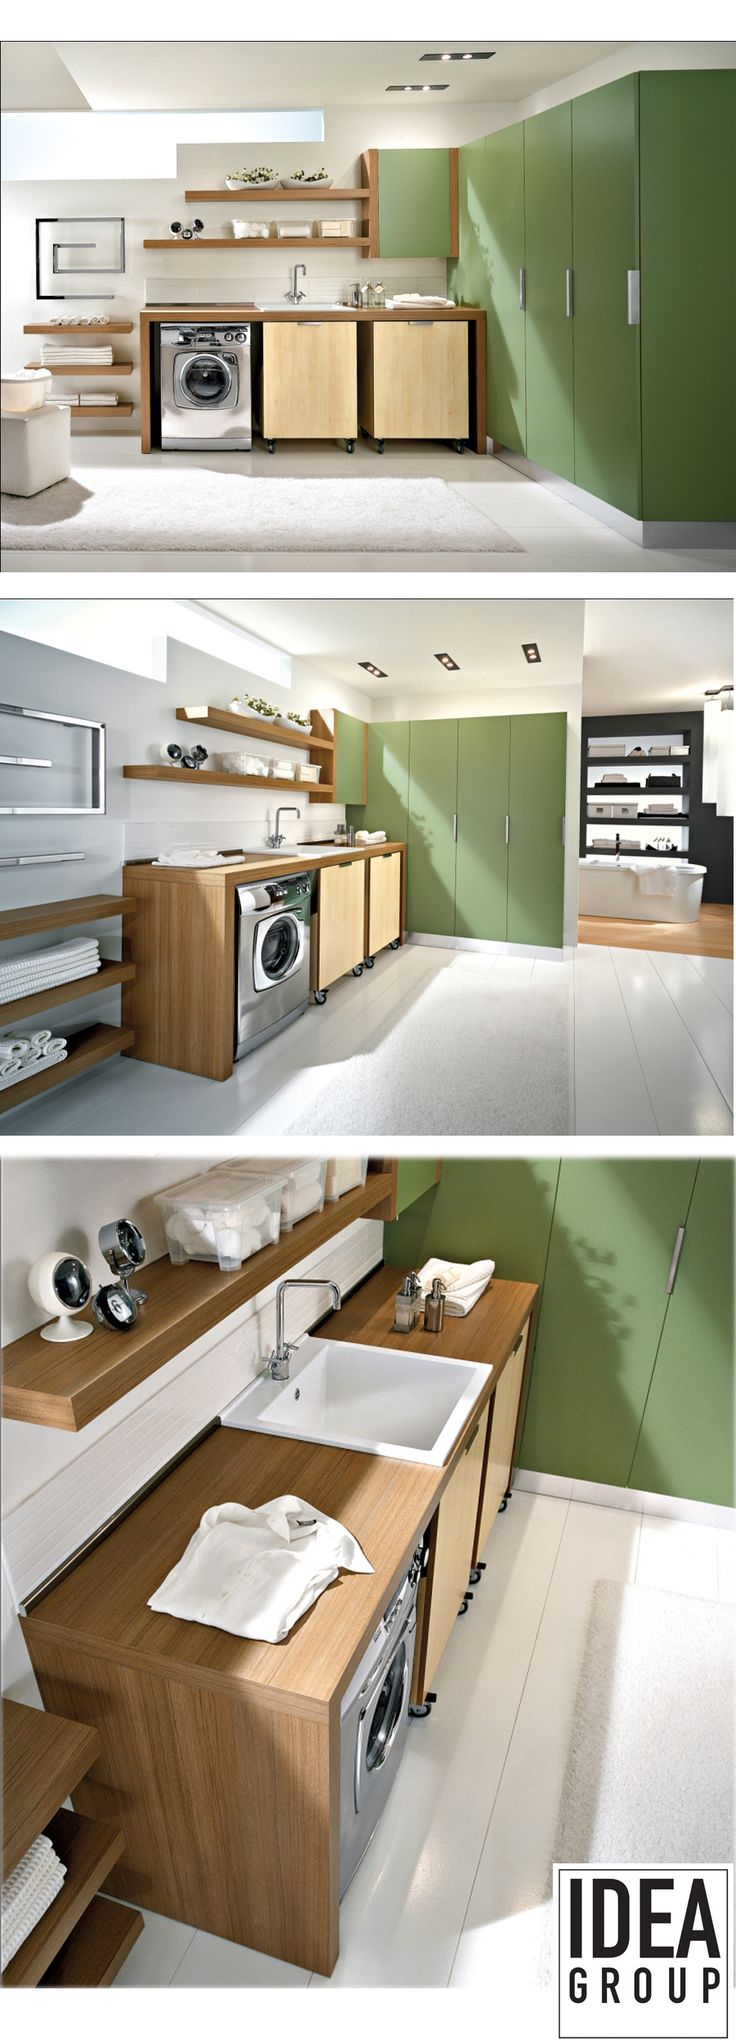 Spazio Collection by Blob #Ideagroup. Extremely versatile and customizable #laundry furniture. #Design